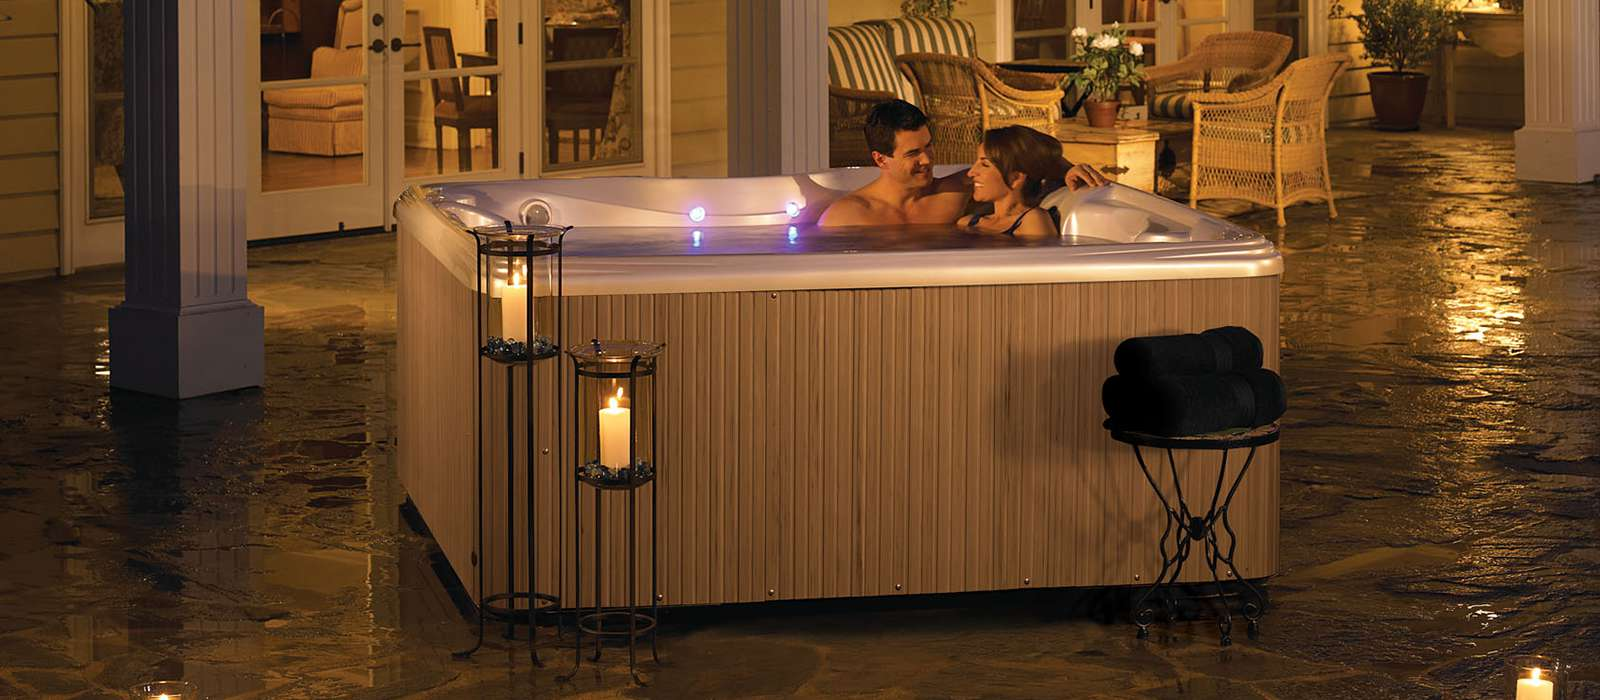 Relay 6 person Hot Tub